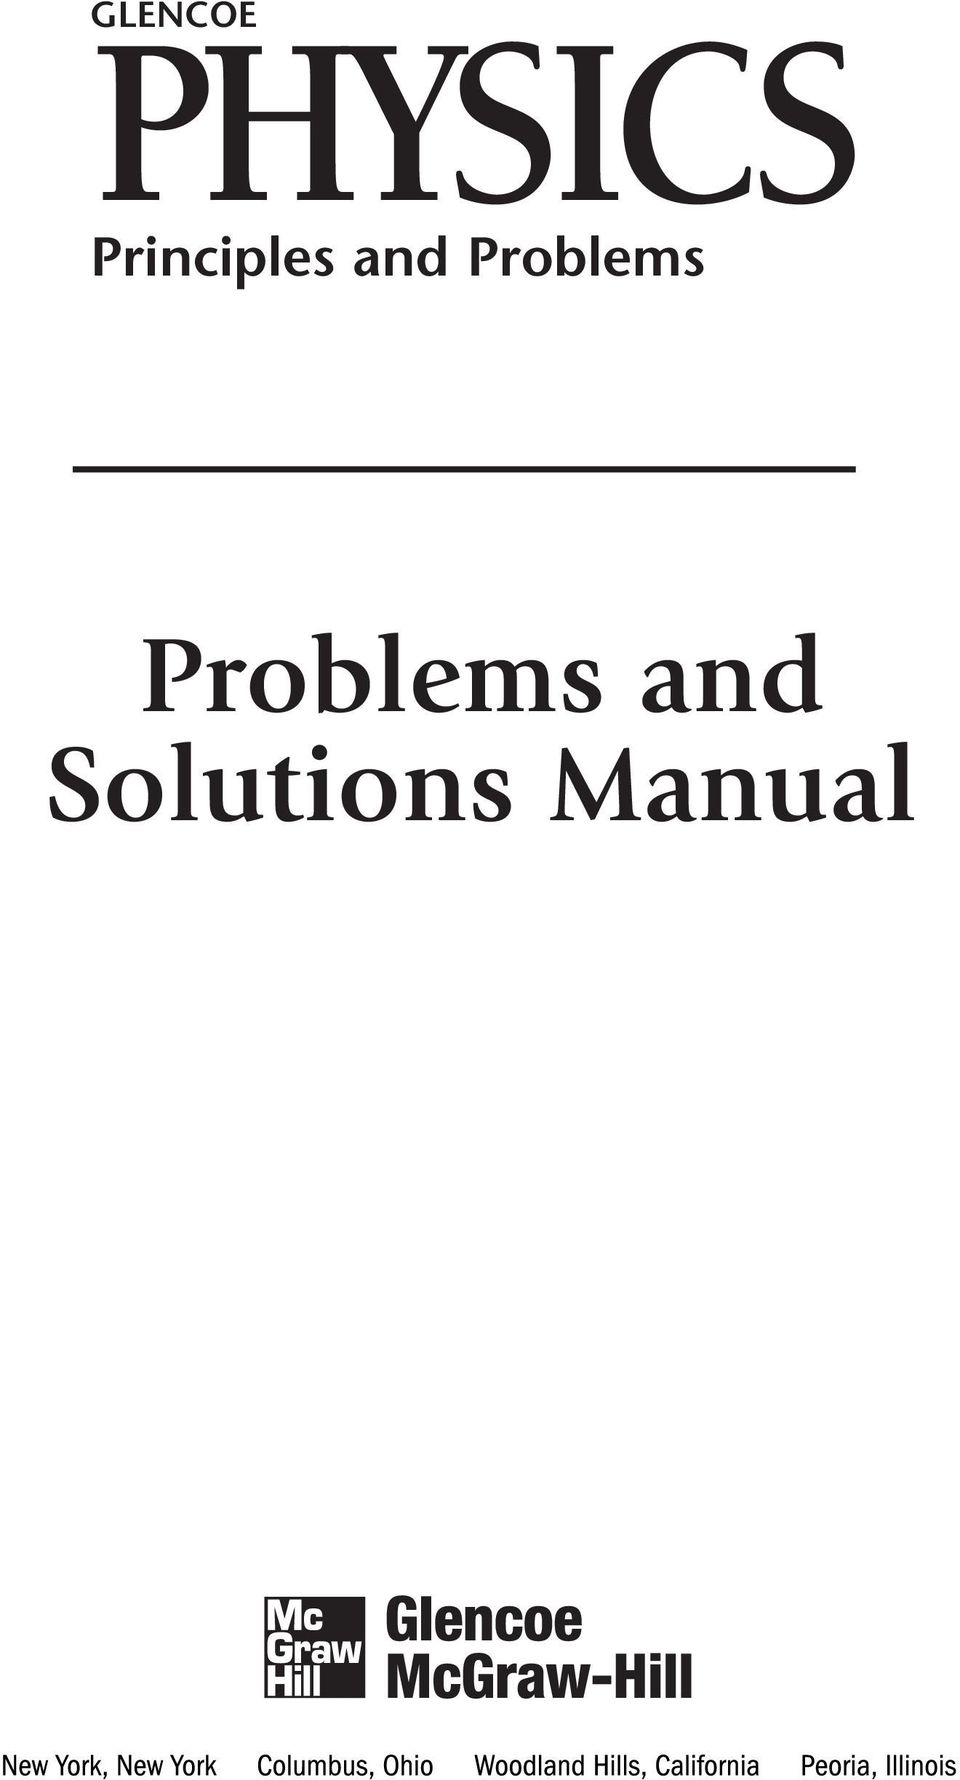 glencoe physics principles and problems problems and solutions rh docplayer net TI-84 Calculator TI-84 Calculator